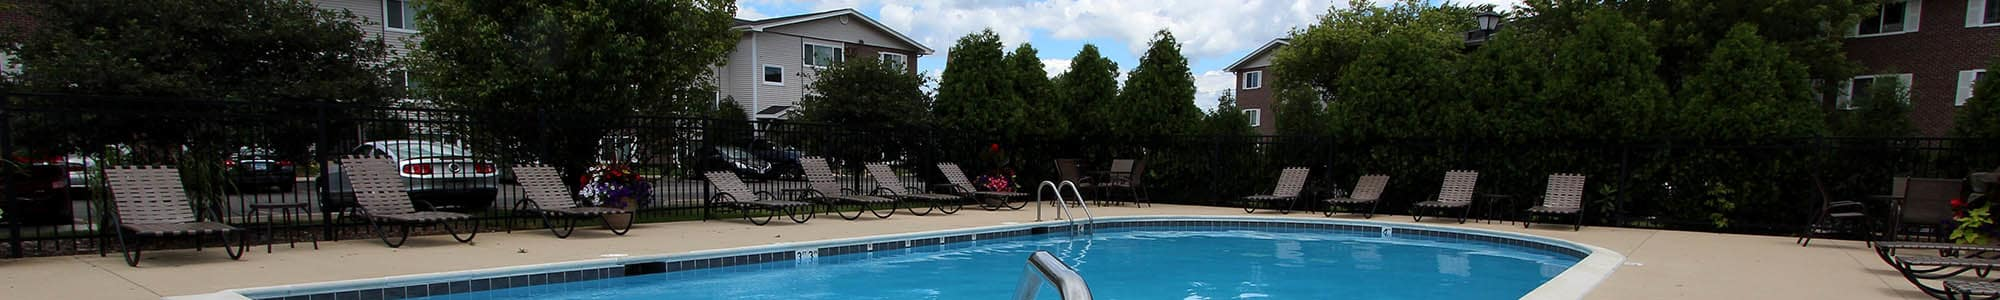 Pet Friendly at West Line Apartments in Hanover Park, Illinois